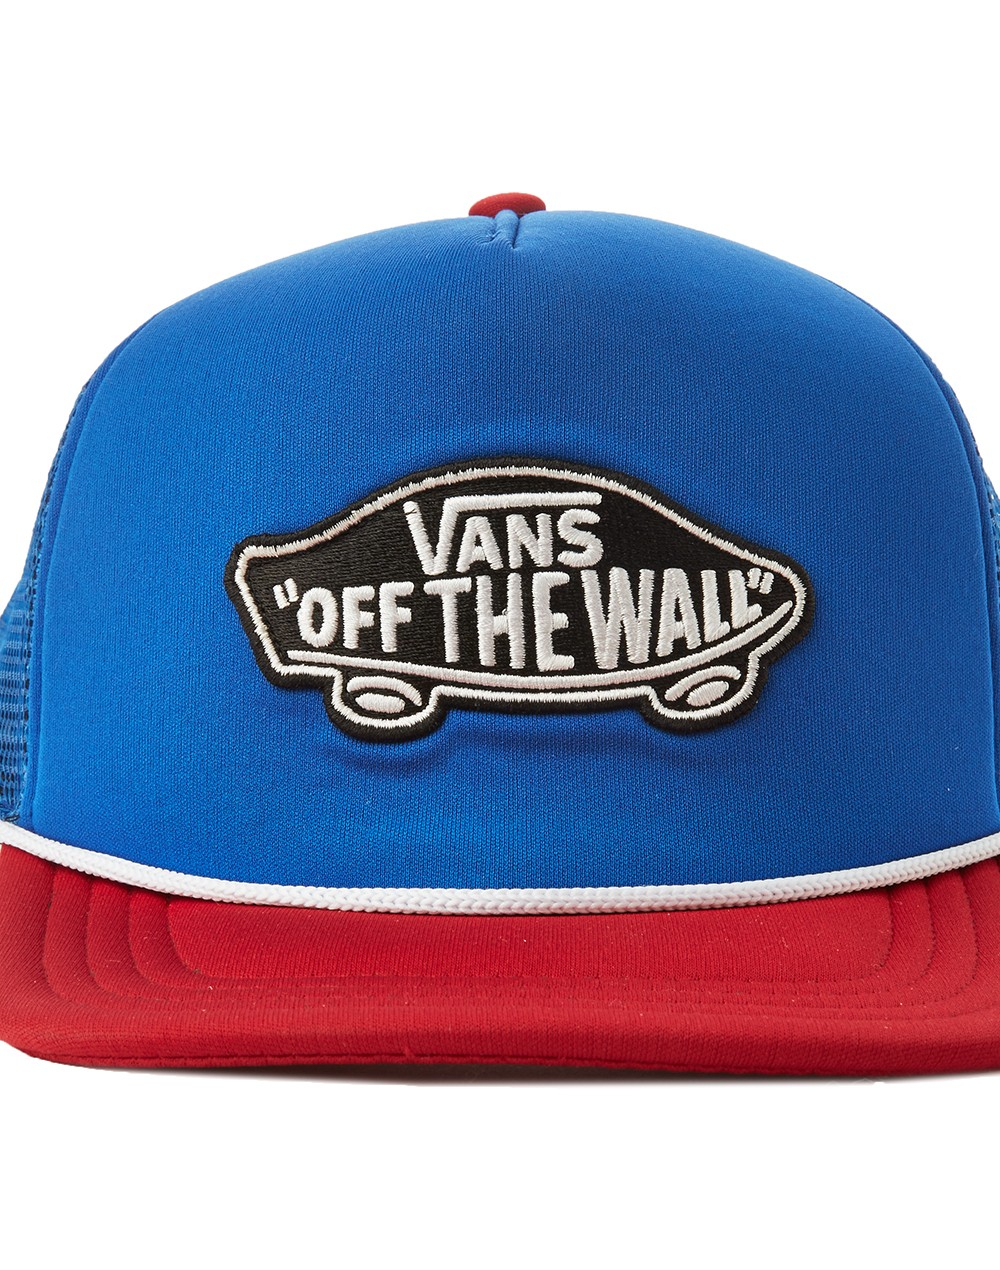 77335b6174b Lyst - Vans Trucker Cap Blue Red - Multi - Multi for Men